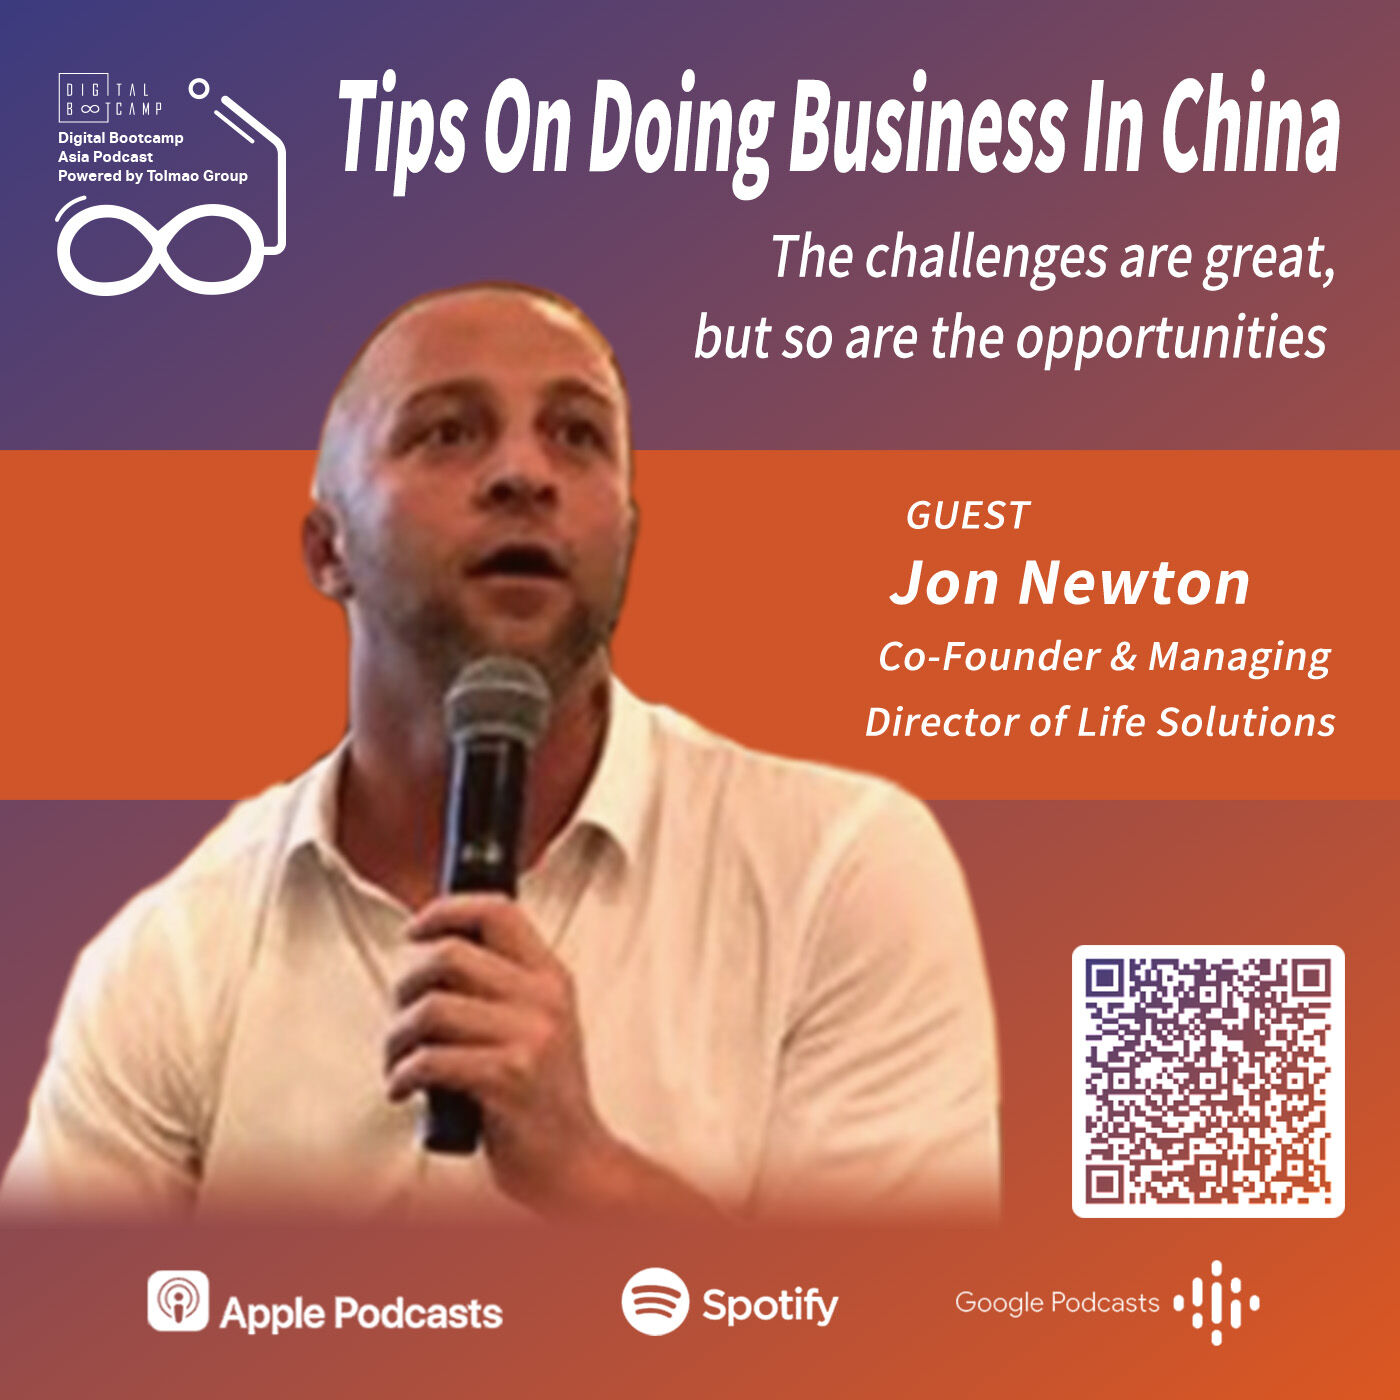 Tips on doing business in China with Jon Newton, Co-Founder & Managing Director of Life Solutions